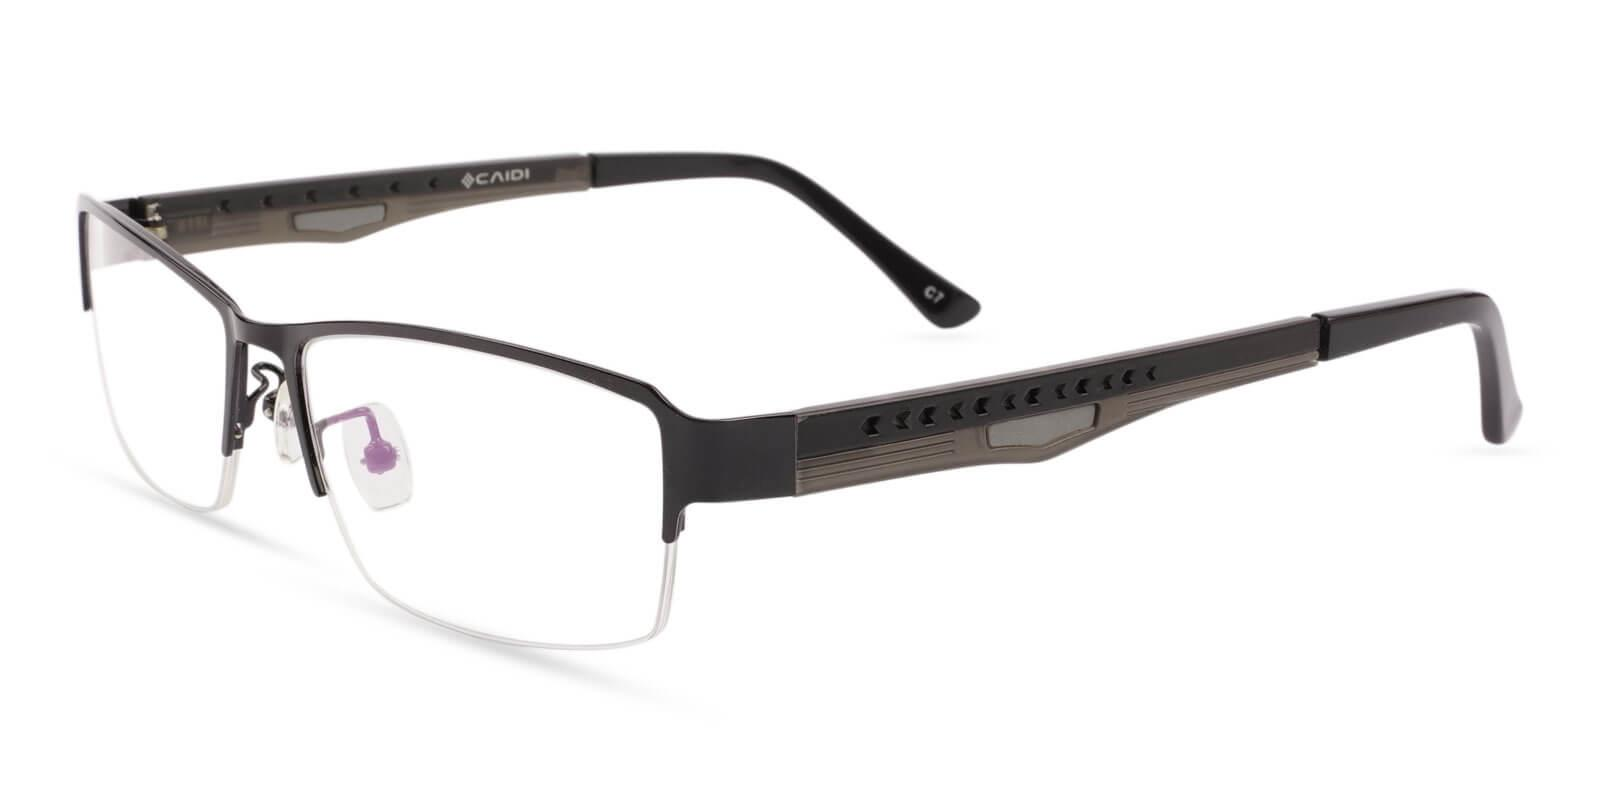 David Black Metal Eyeglasses , NosePads Frames from ABBE Glasses